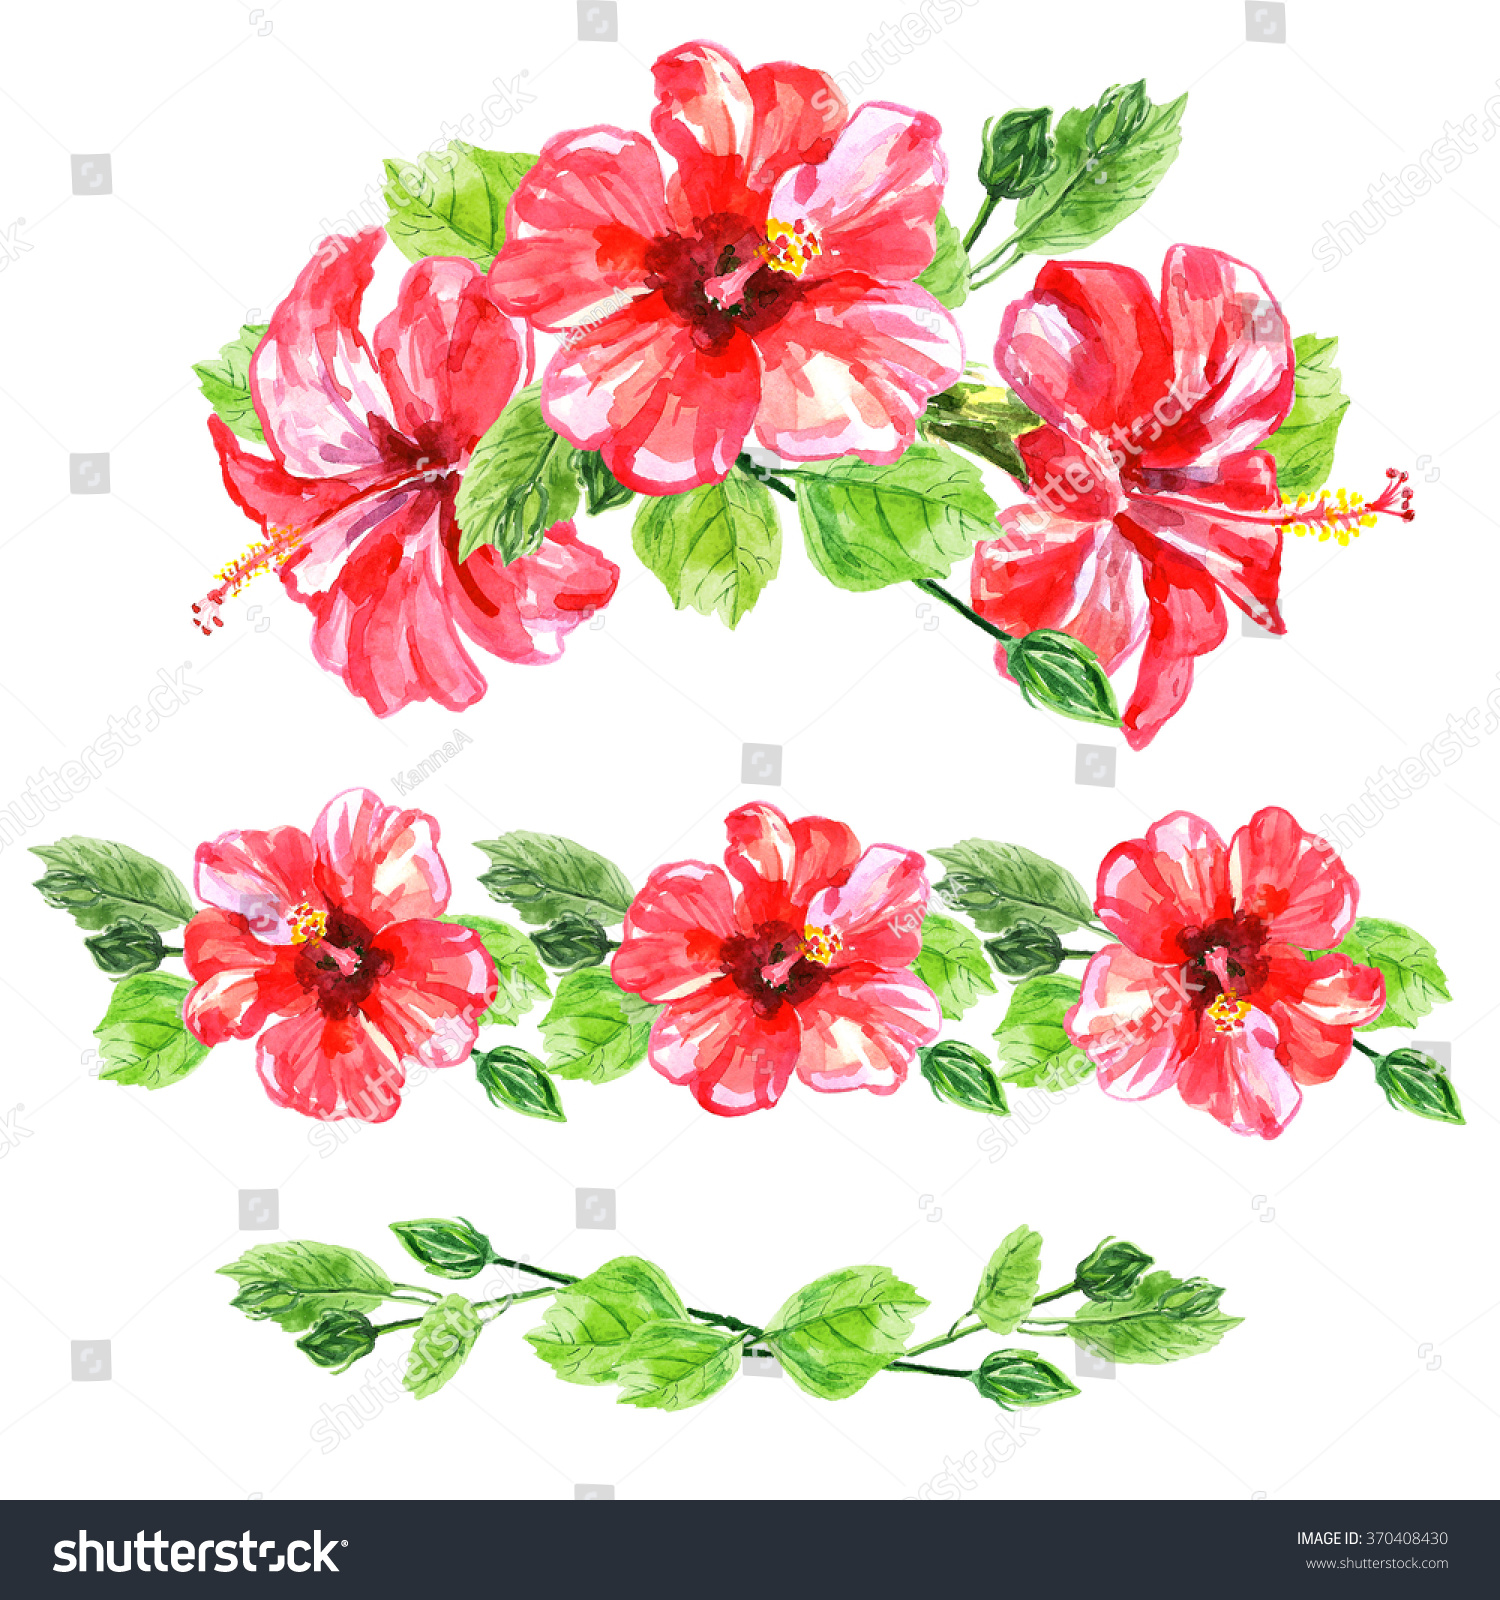 Set red watercolor hibiscus flower illustration stock illustration set of red watercolor hibiscus flower illustration isolated on white background colorful floral collection izmirmasajfo